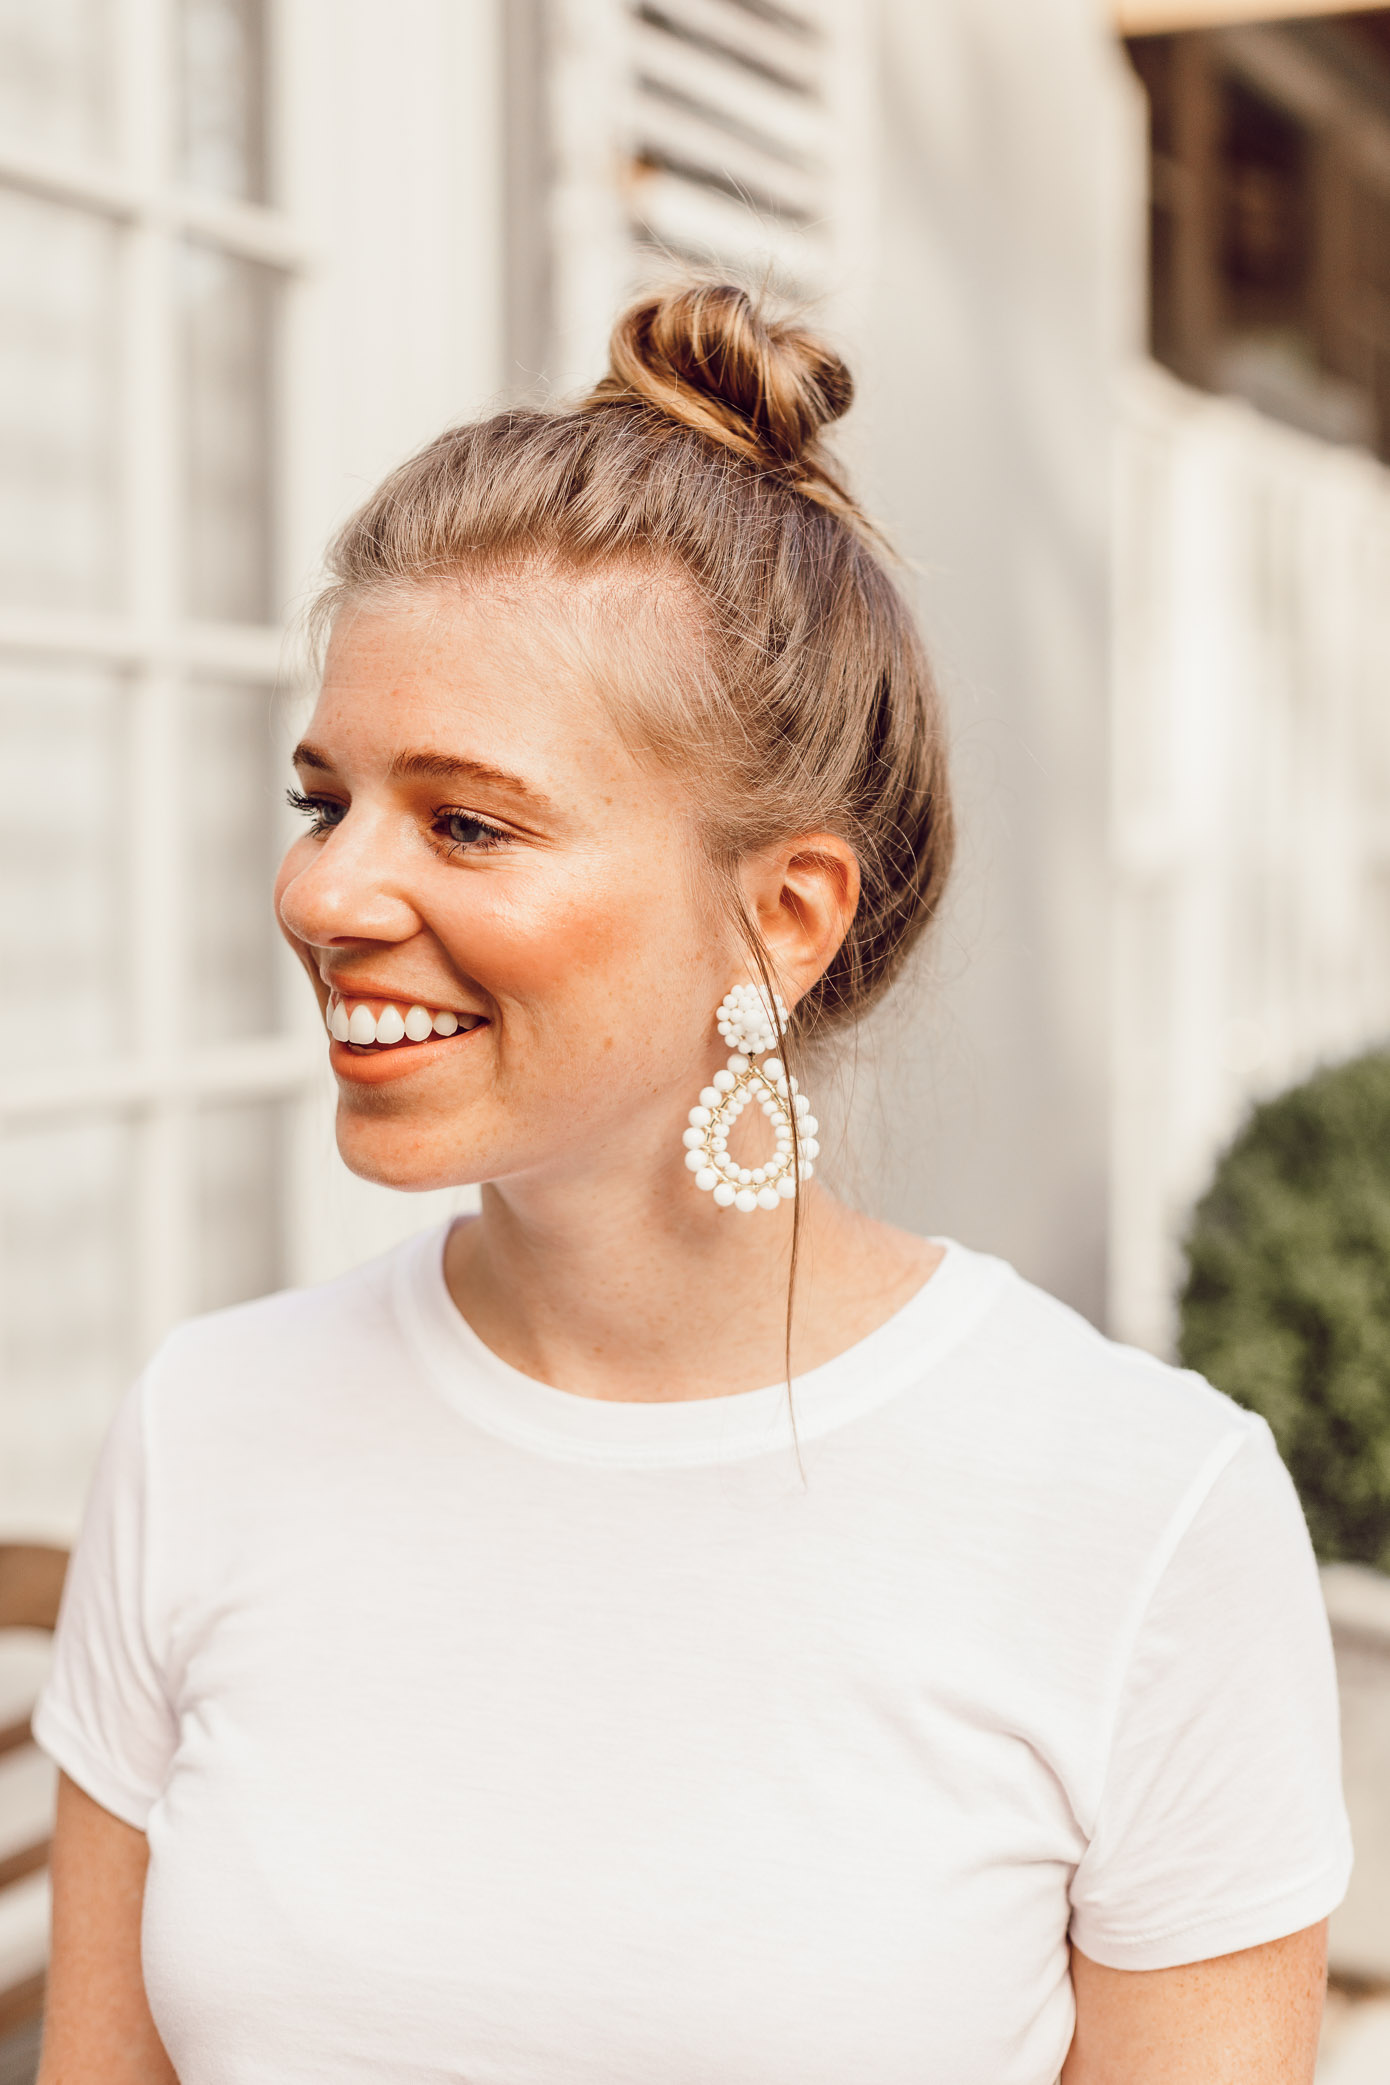 Step Out of Your Color Comfort Zone   Messy Topknot, Basic White Tee, White Statement Earrings styled on Louella Reese